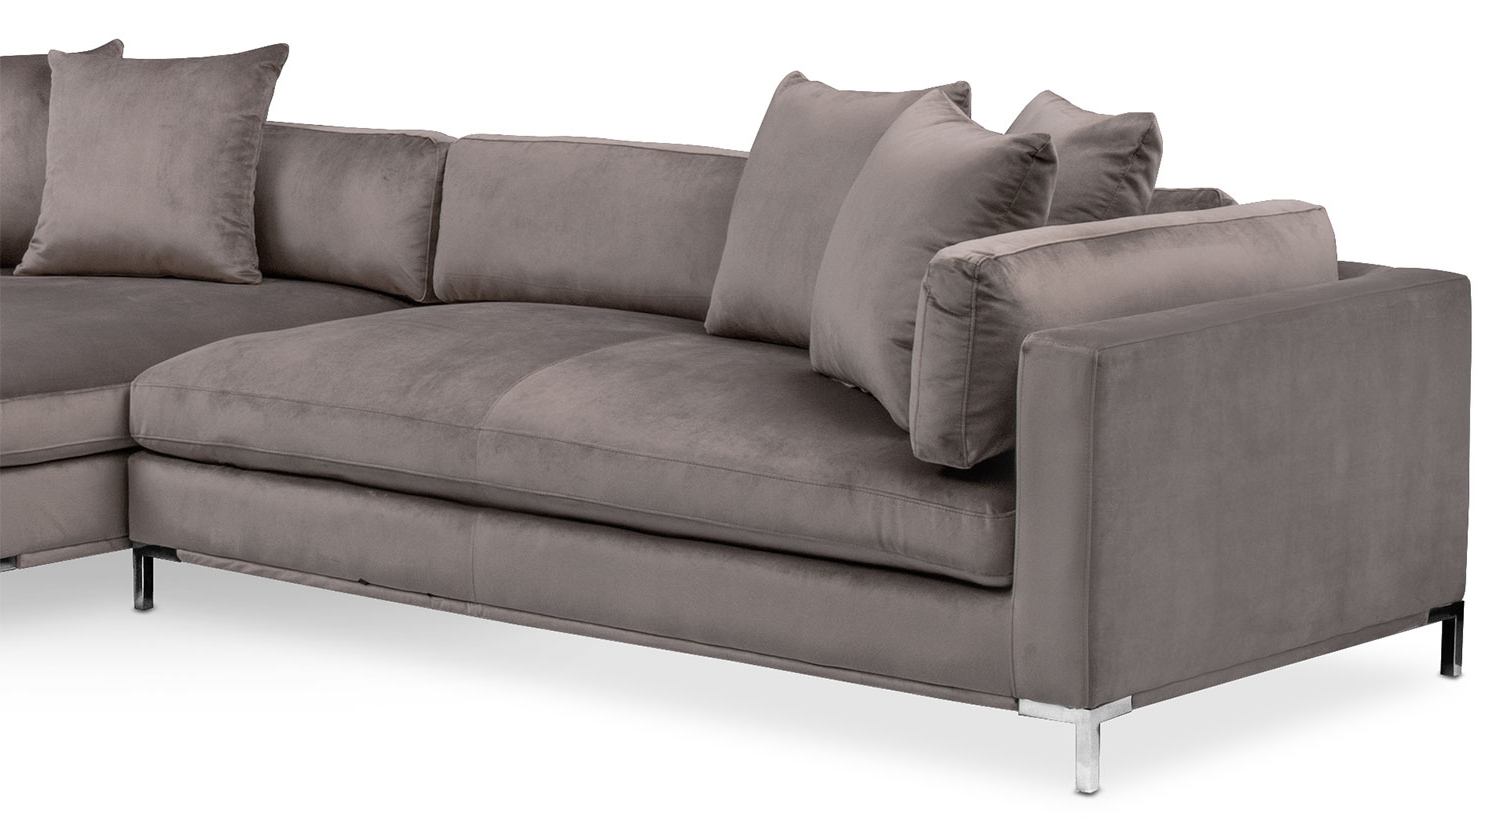 Value City Furniture And Mattresses Pertaining To Nico Grey Sectionals With Left Facing Storage Chaise (Gallery 3 of 20)